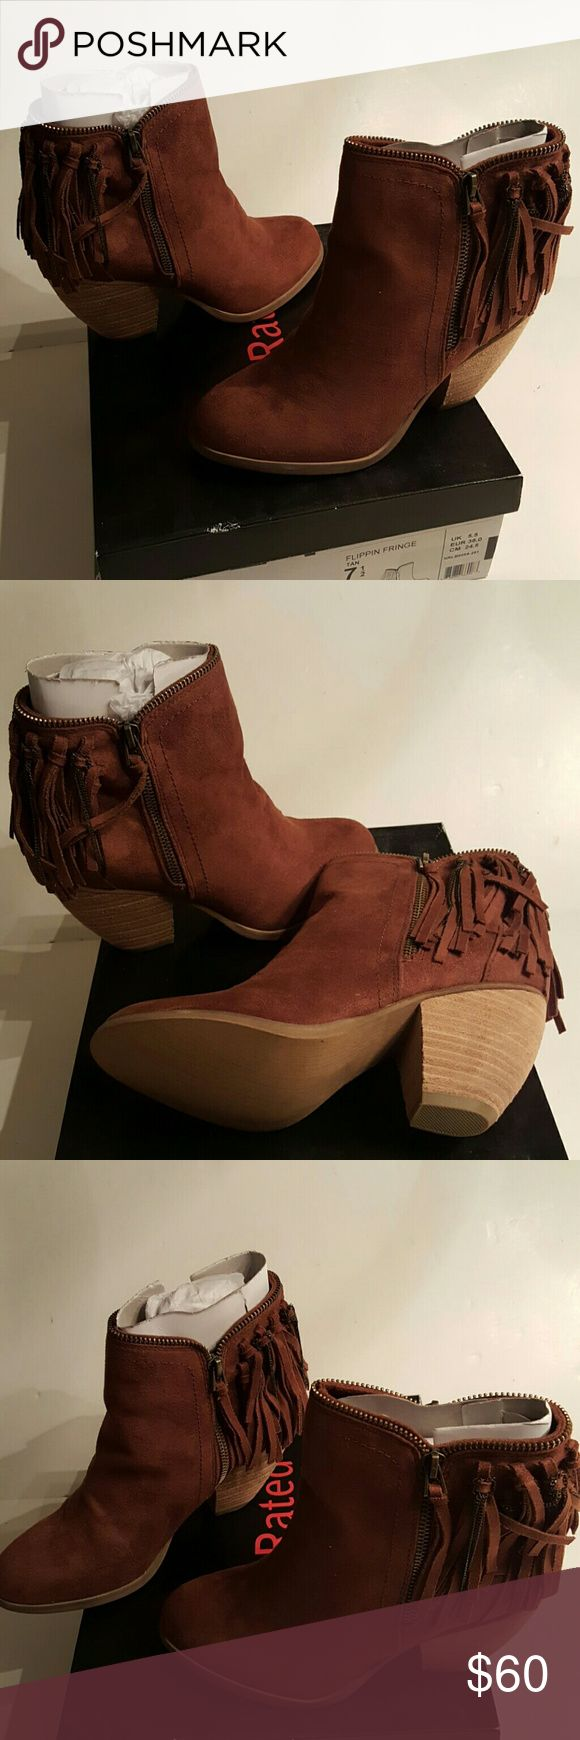 Not Rated Flippin Fringe Brown Boots US 7.5 EU 38 Not Rated Flippin Fringe Brown Boots US 7.5 EU 38 new in box Not Rated Shoes Ankle Boots & Booties